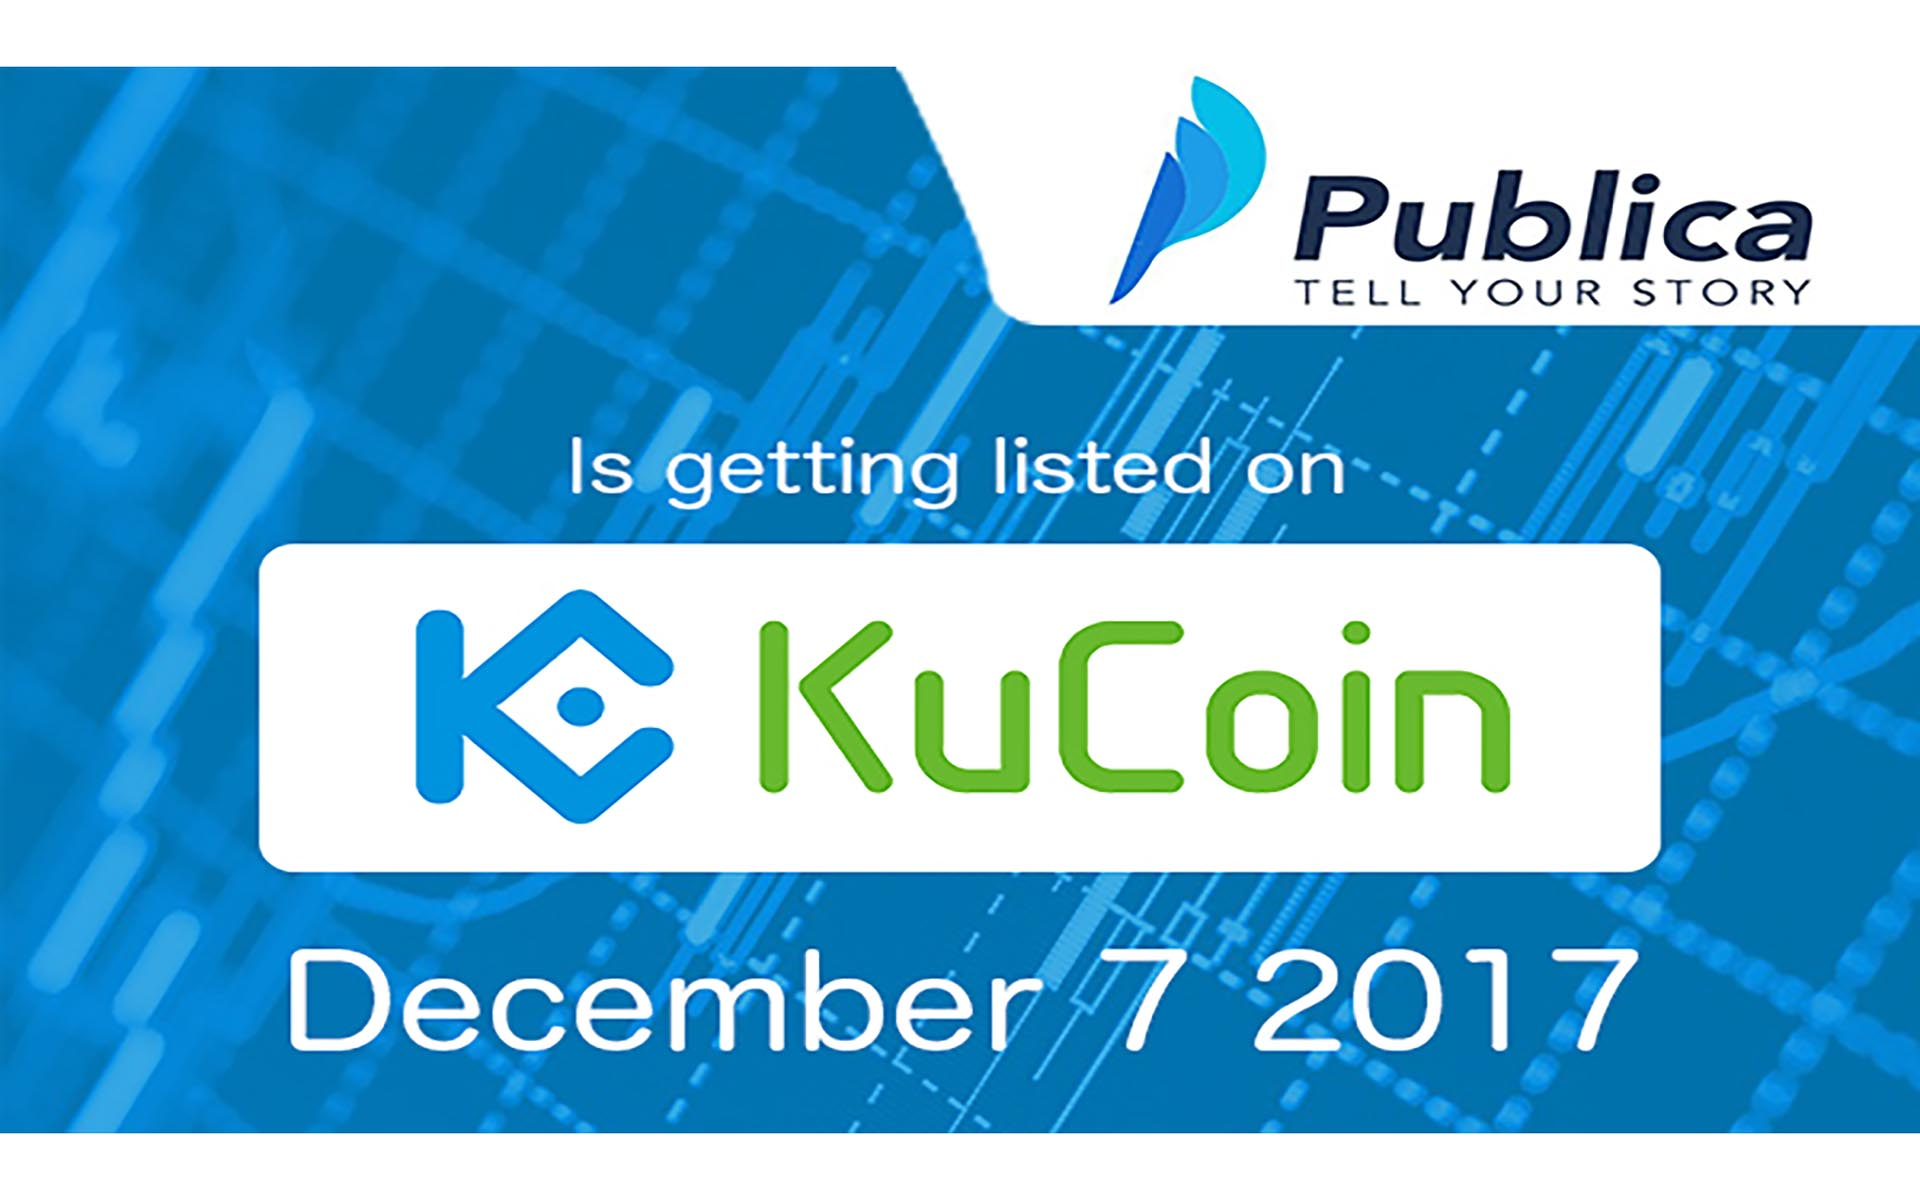 Publica Will Be Listed On KuCoin: Trading Starts On December 7